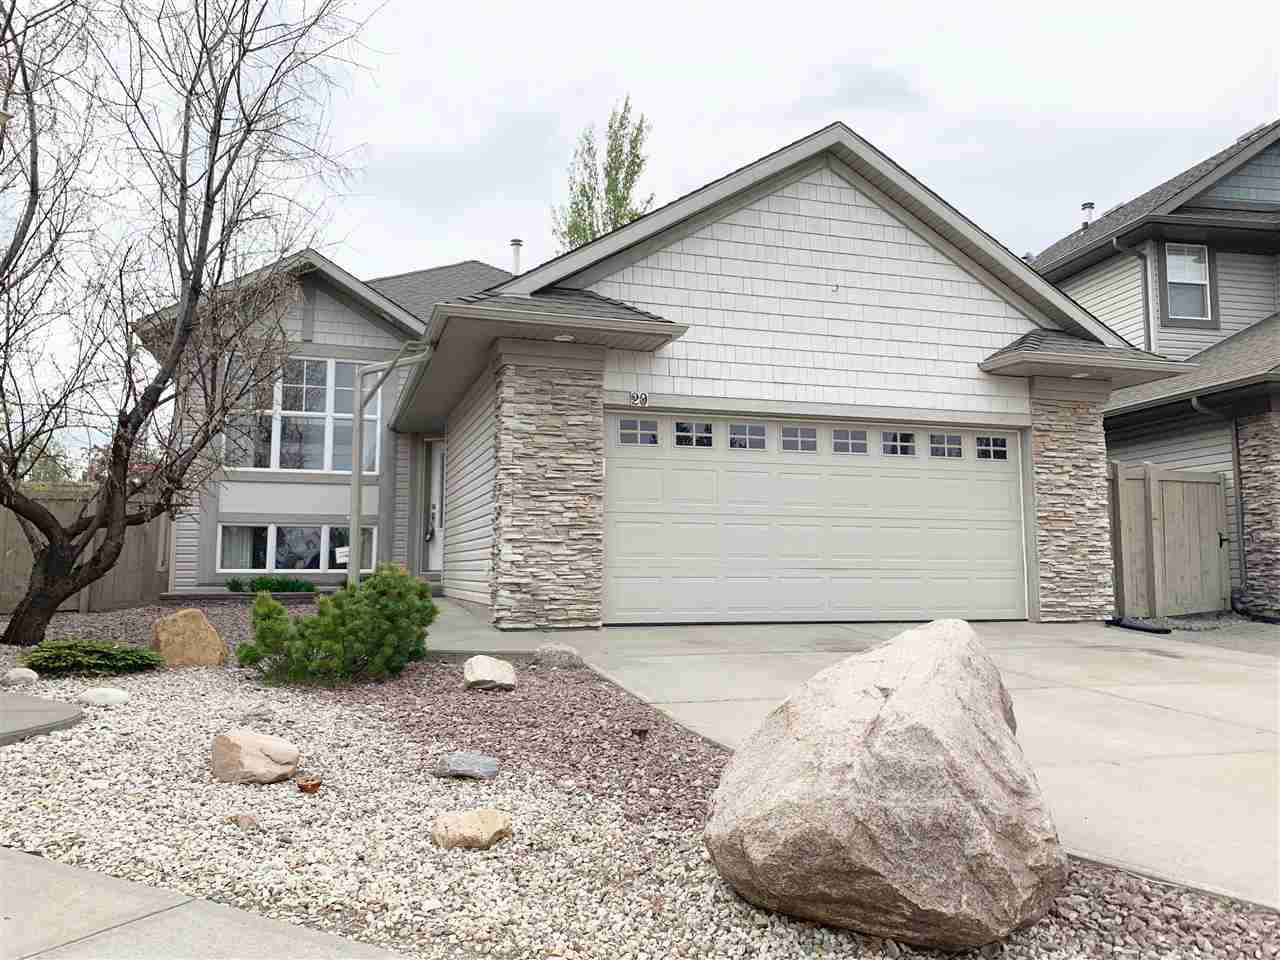 Main Photo: 29 RIDGEHAVEN Crescent: Sherwood Park House for sale : MLS®# E4158410